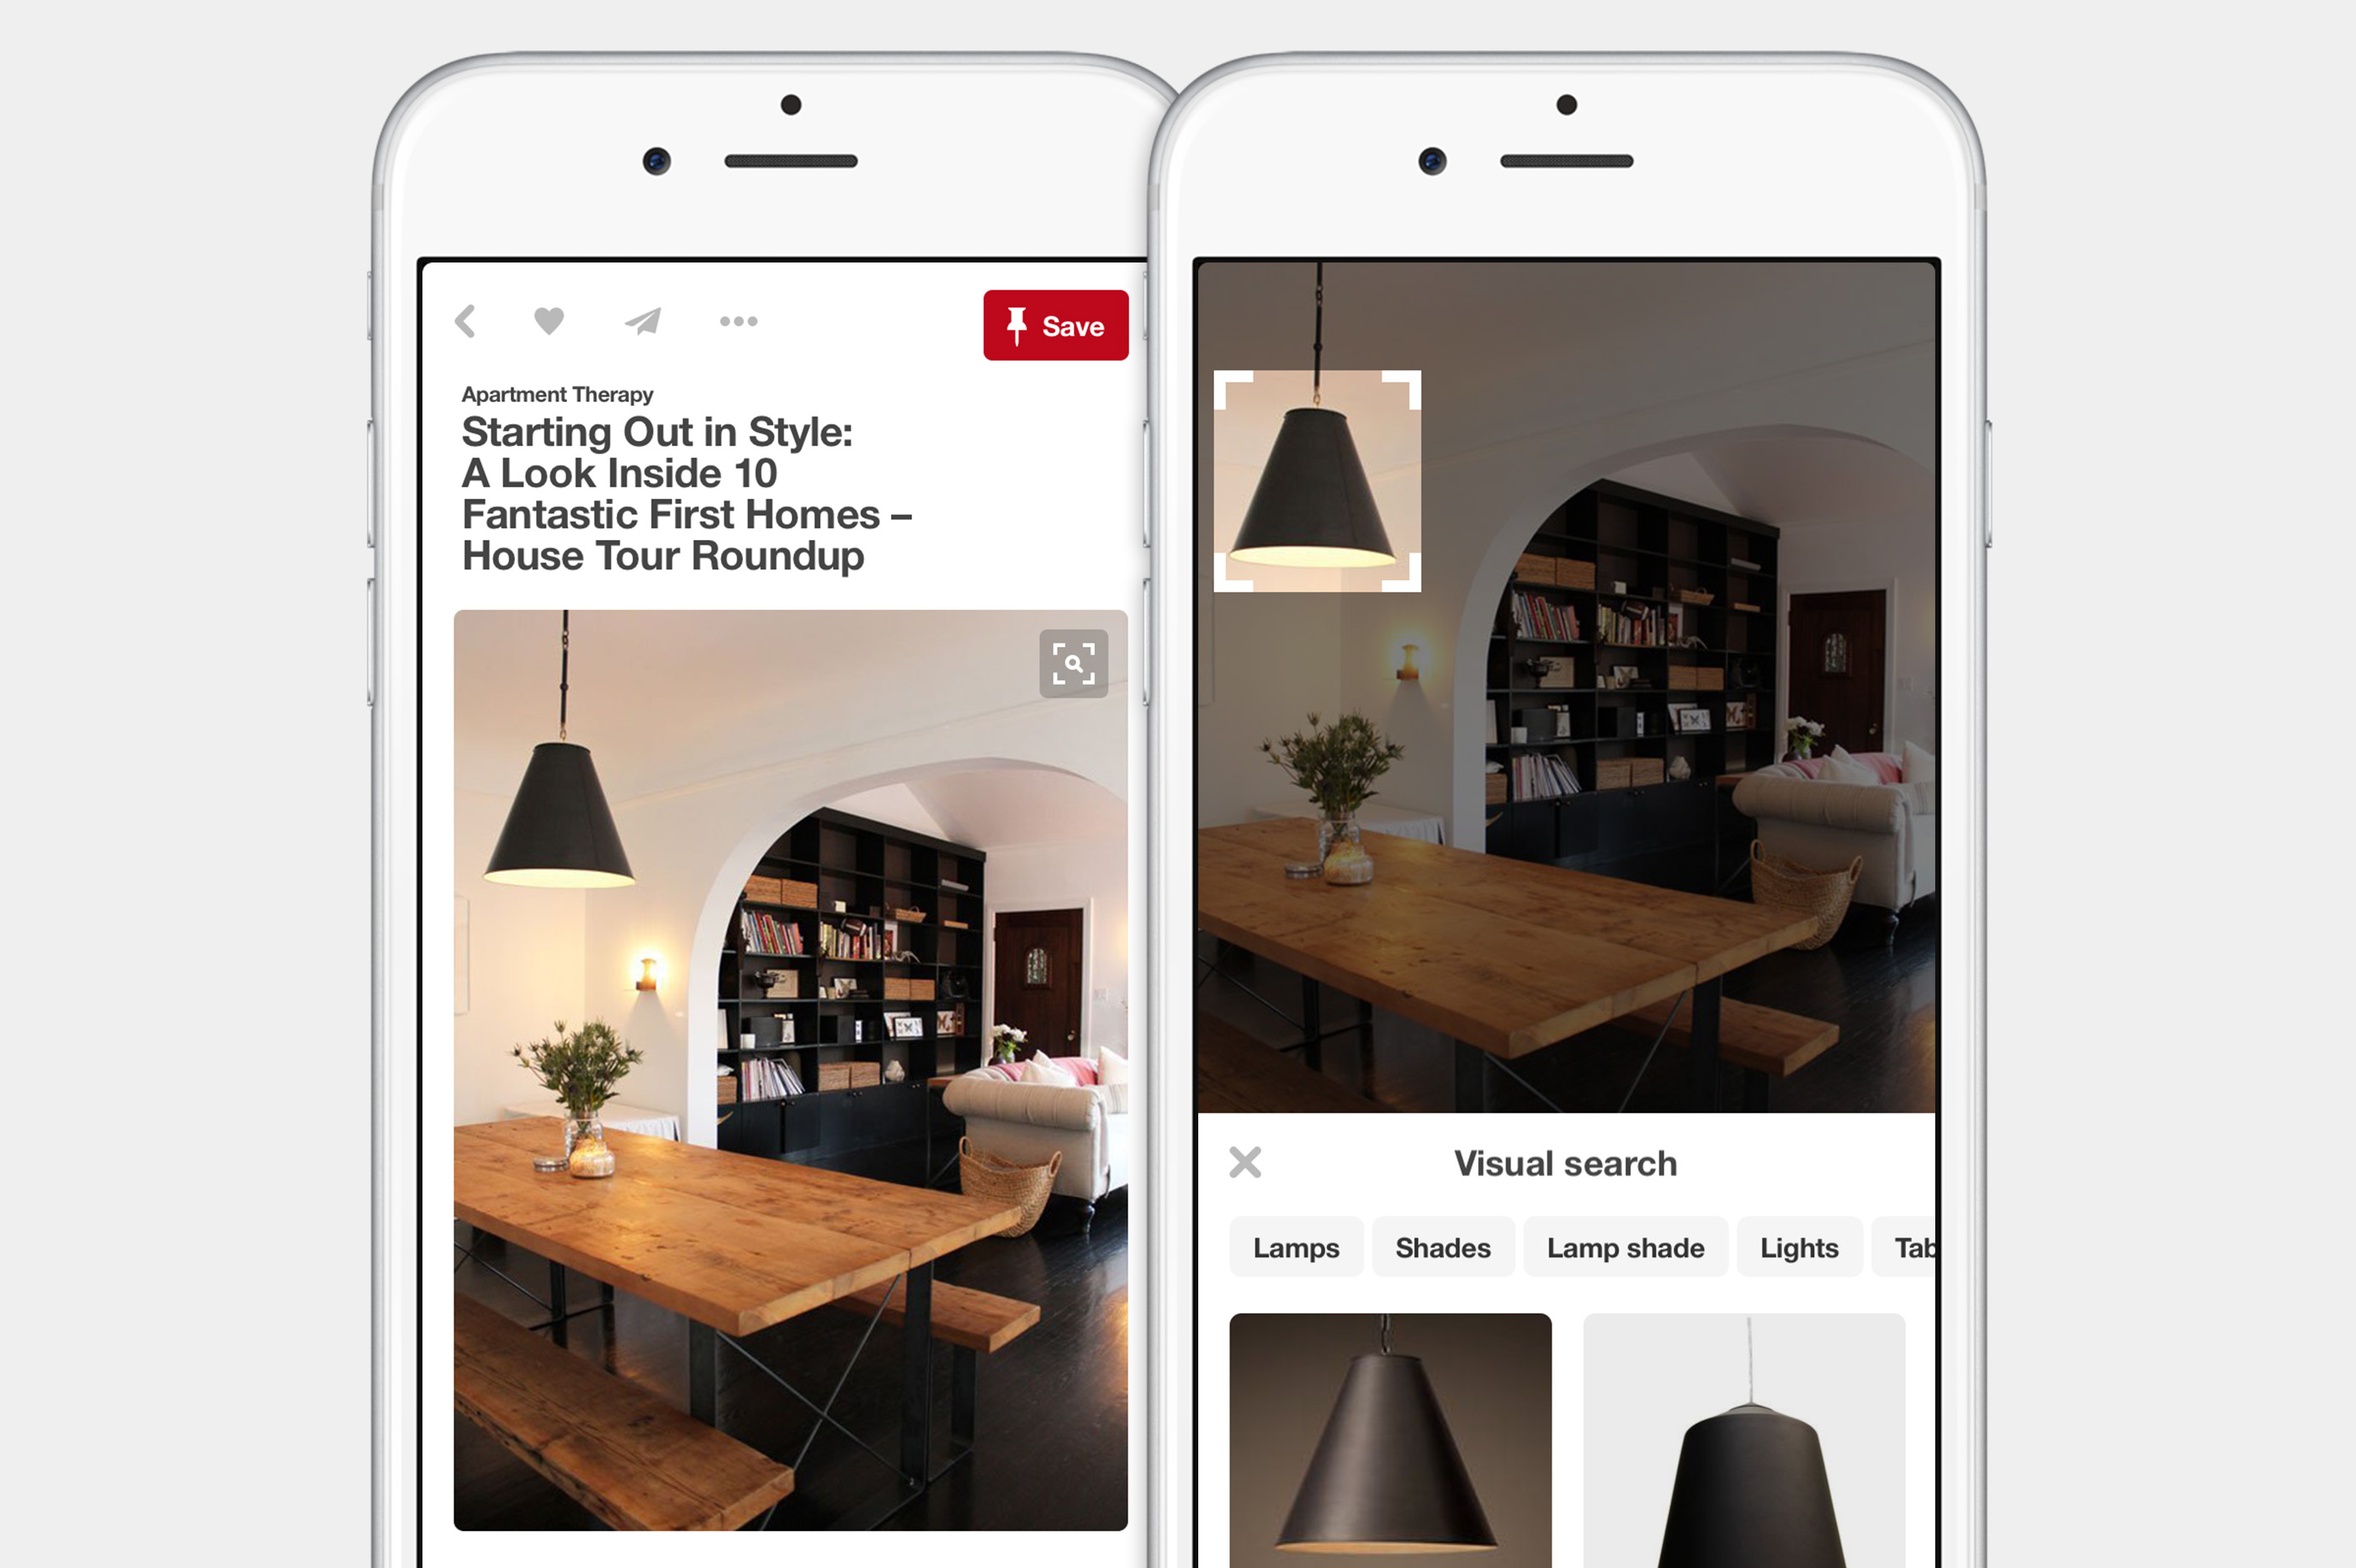 Pinterest Now Seeing 2 Billion Searches Per Month - How Pinterest Search Works | Social Media Today